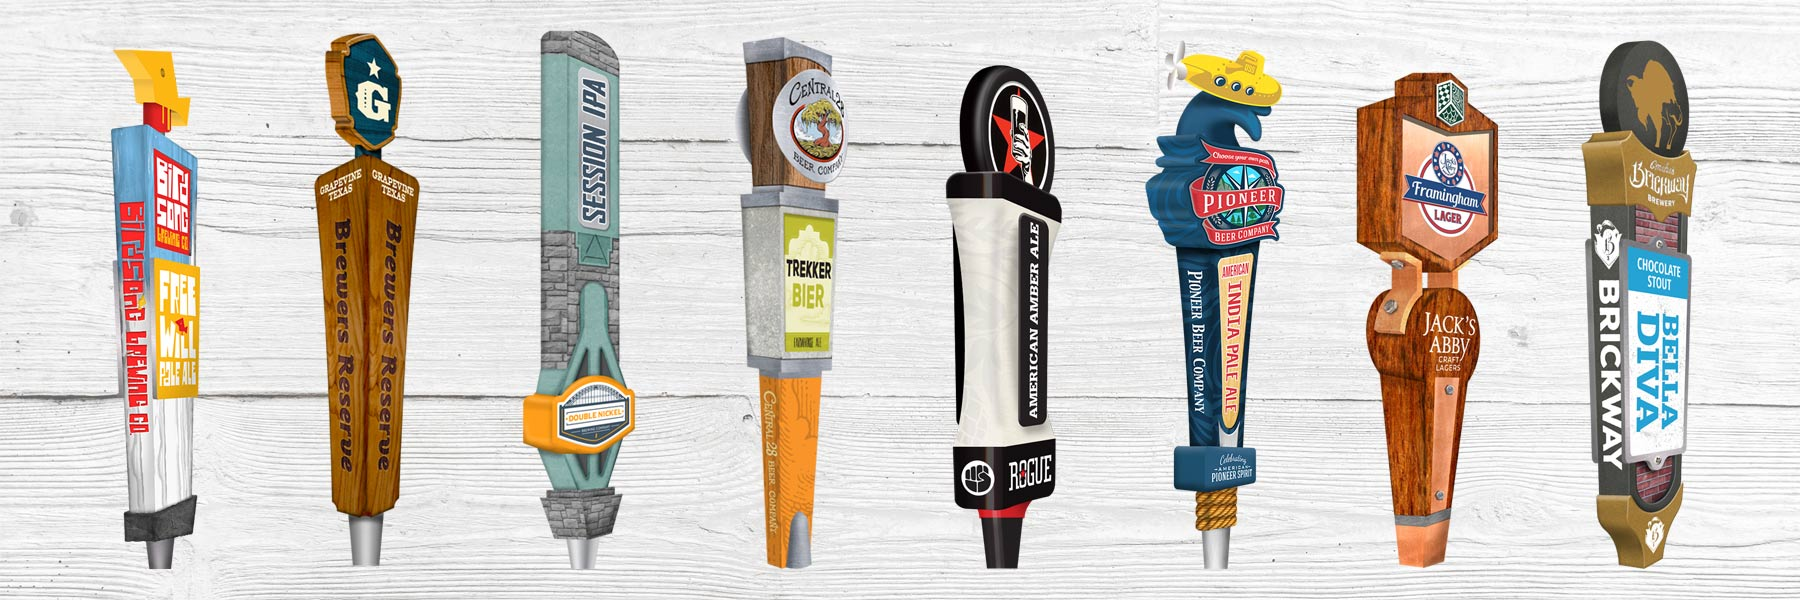 Brewery Tap Handle Design